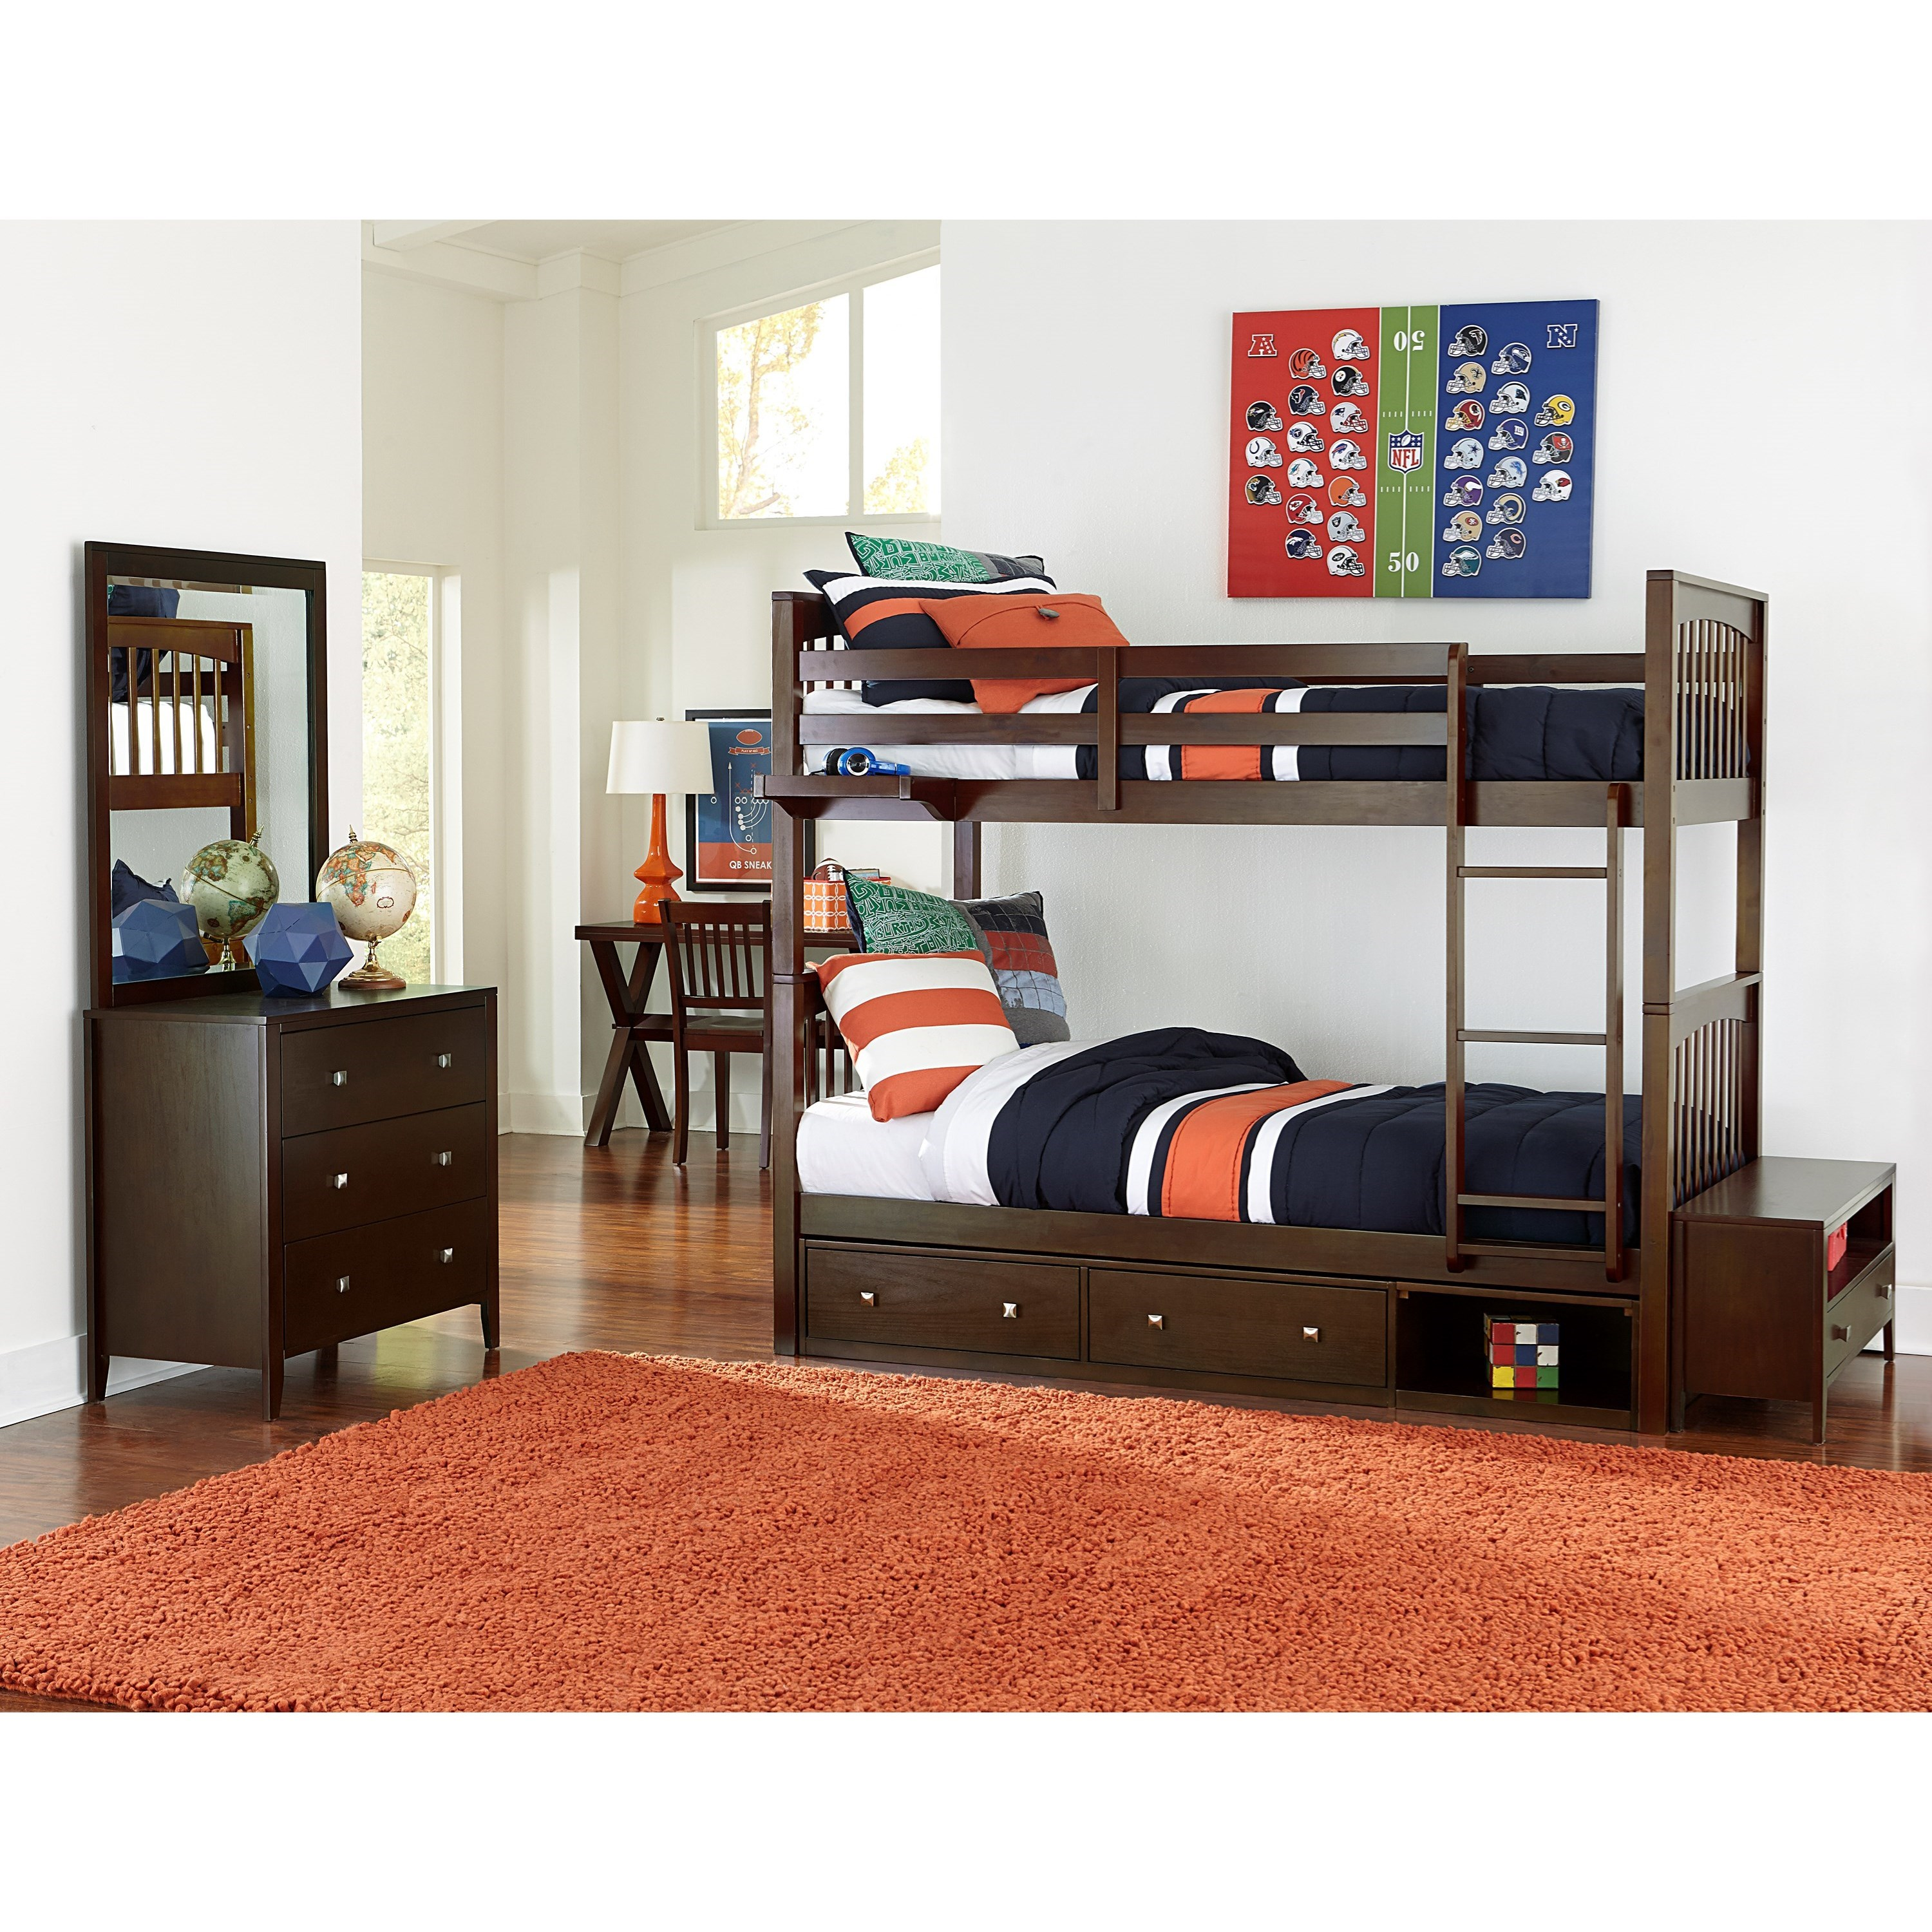 Ne Kids Pulse Twin Bunk Bed Room Group With Storage Unit